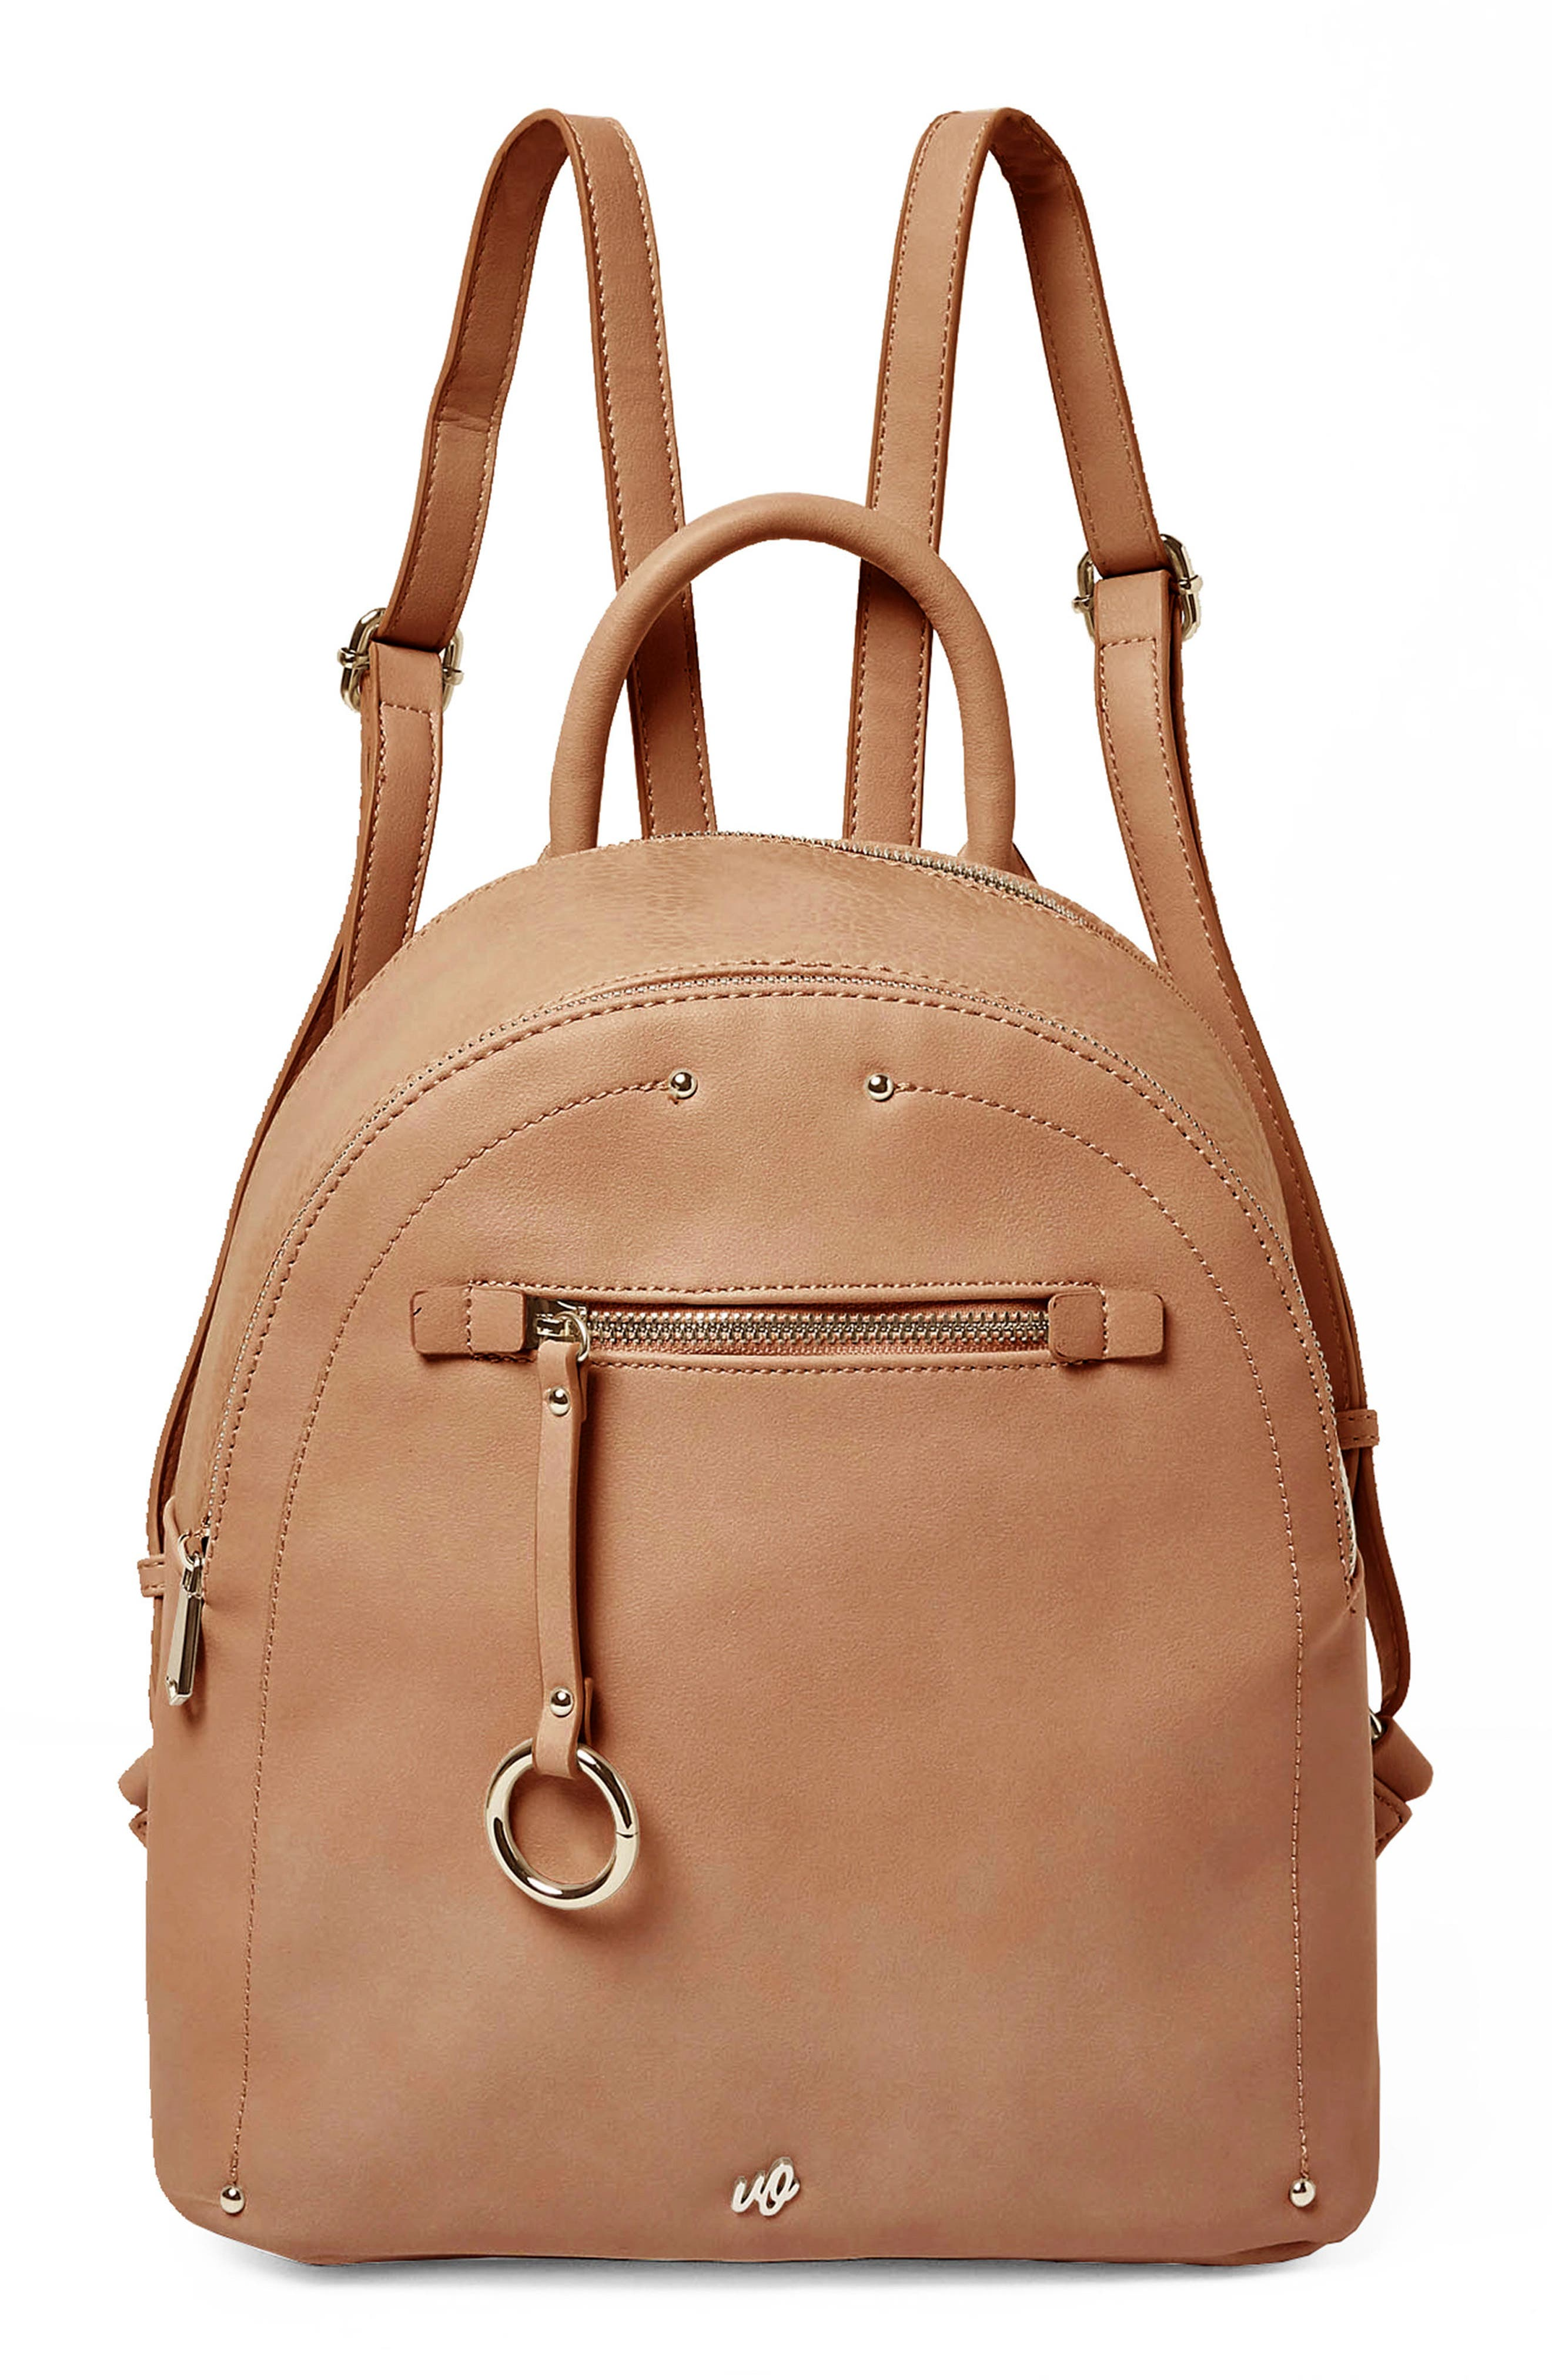 Into the Night Vegan Leather Backpack,                             Main thumbnail 1, color,                             Latte